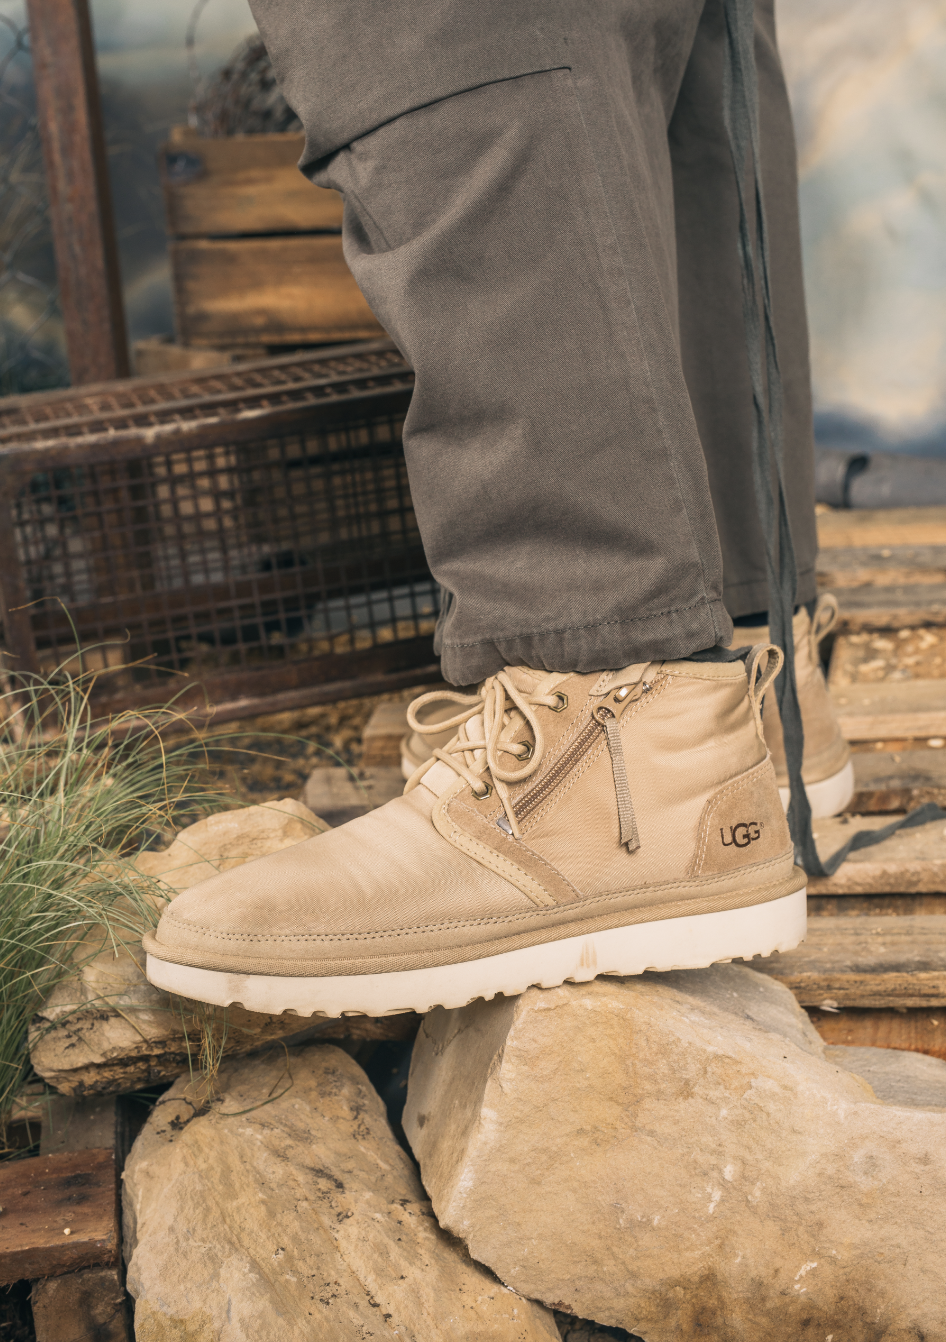 UGG in Europe campaign.